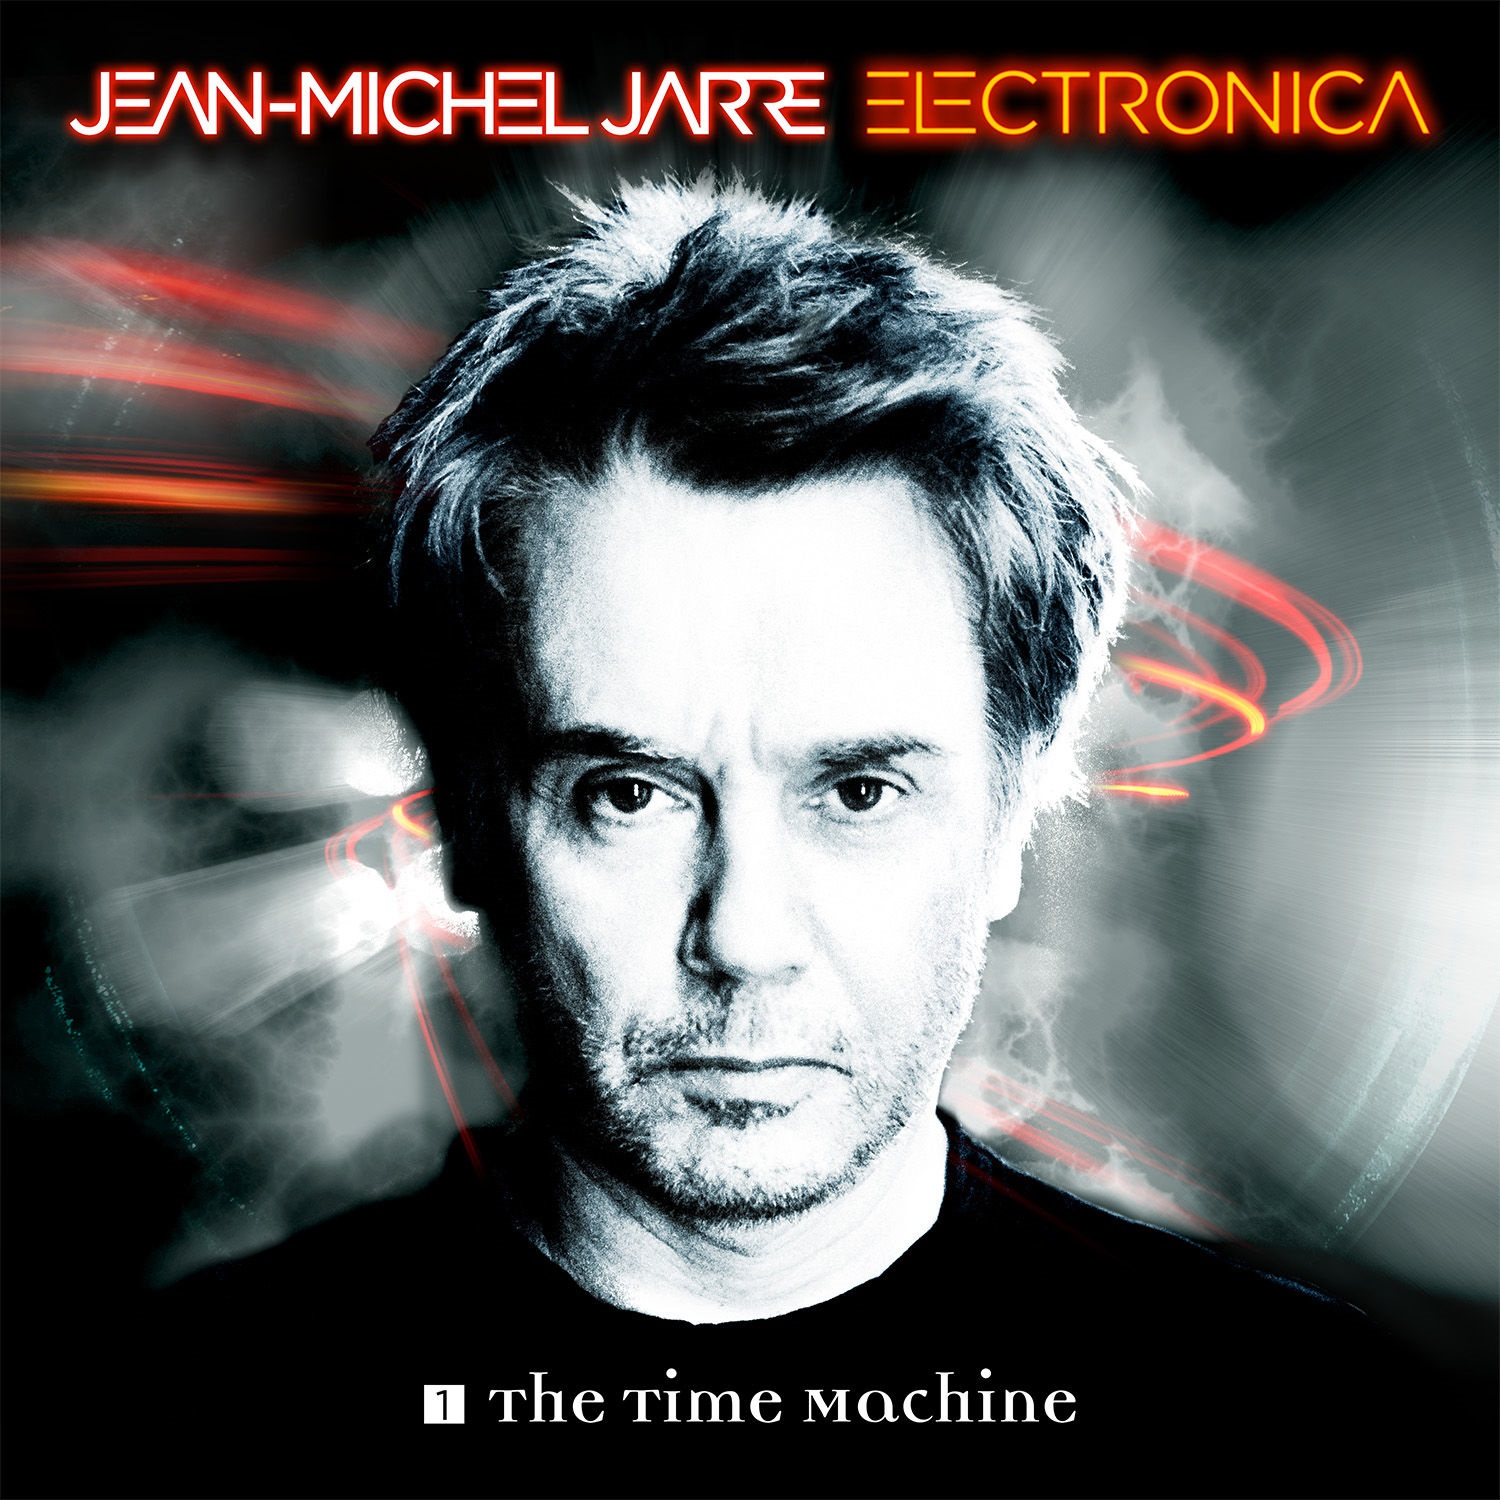 Jean Michel Jarre. Electronica 1. The Time Machine